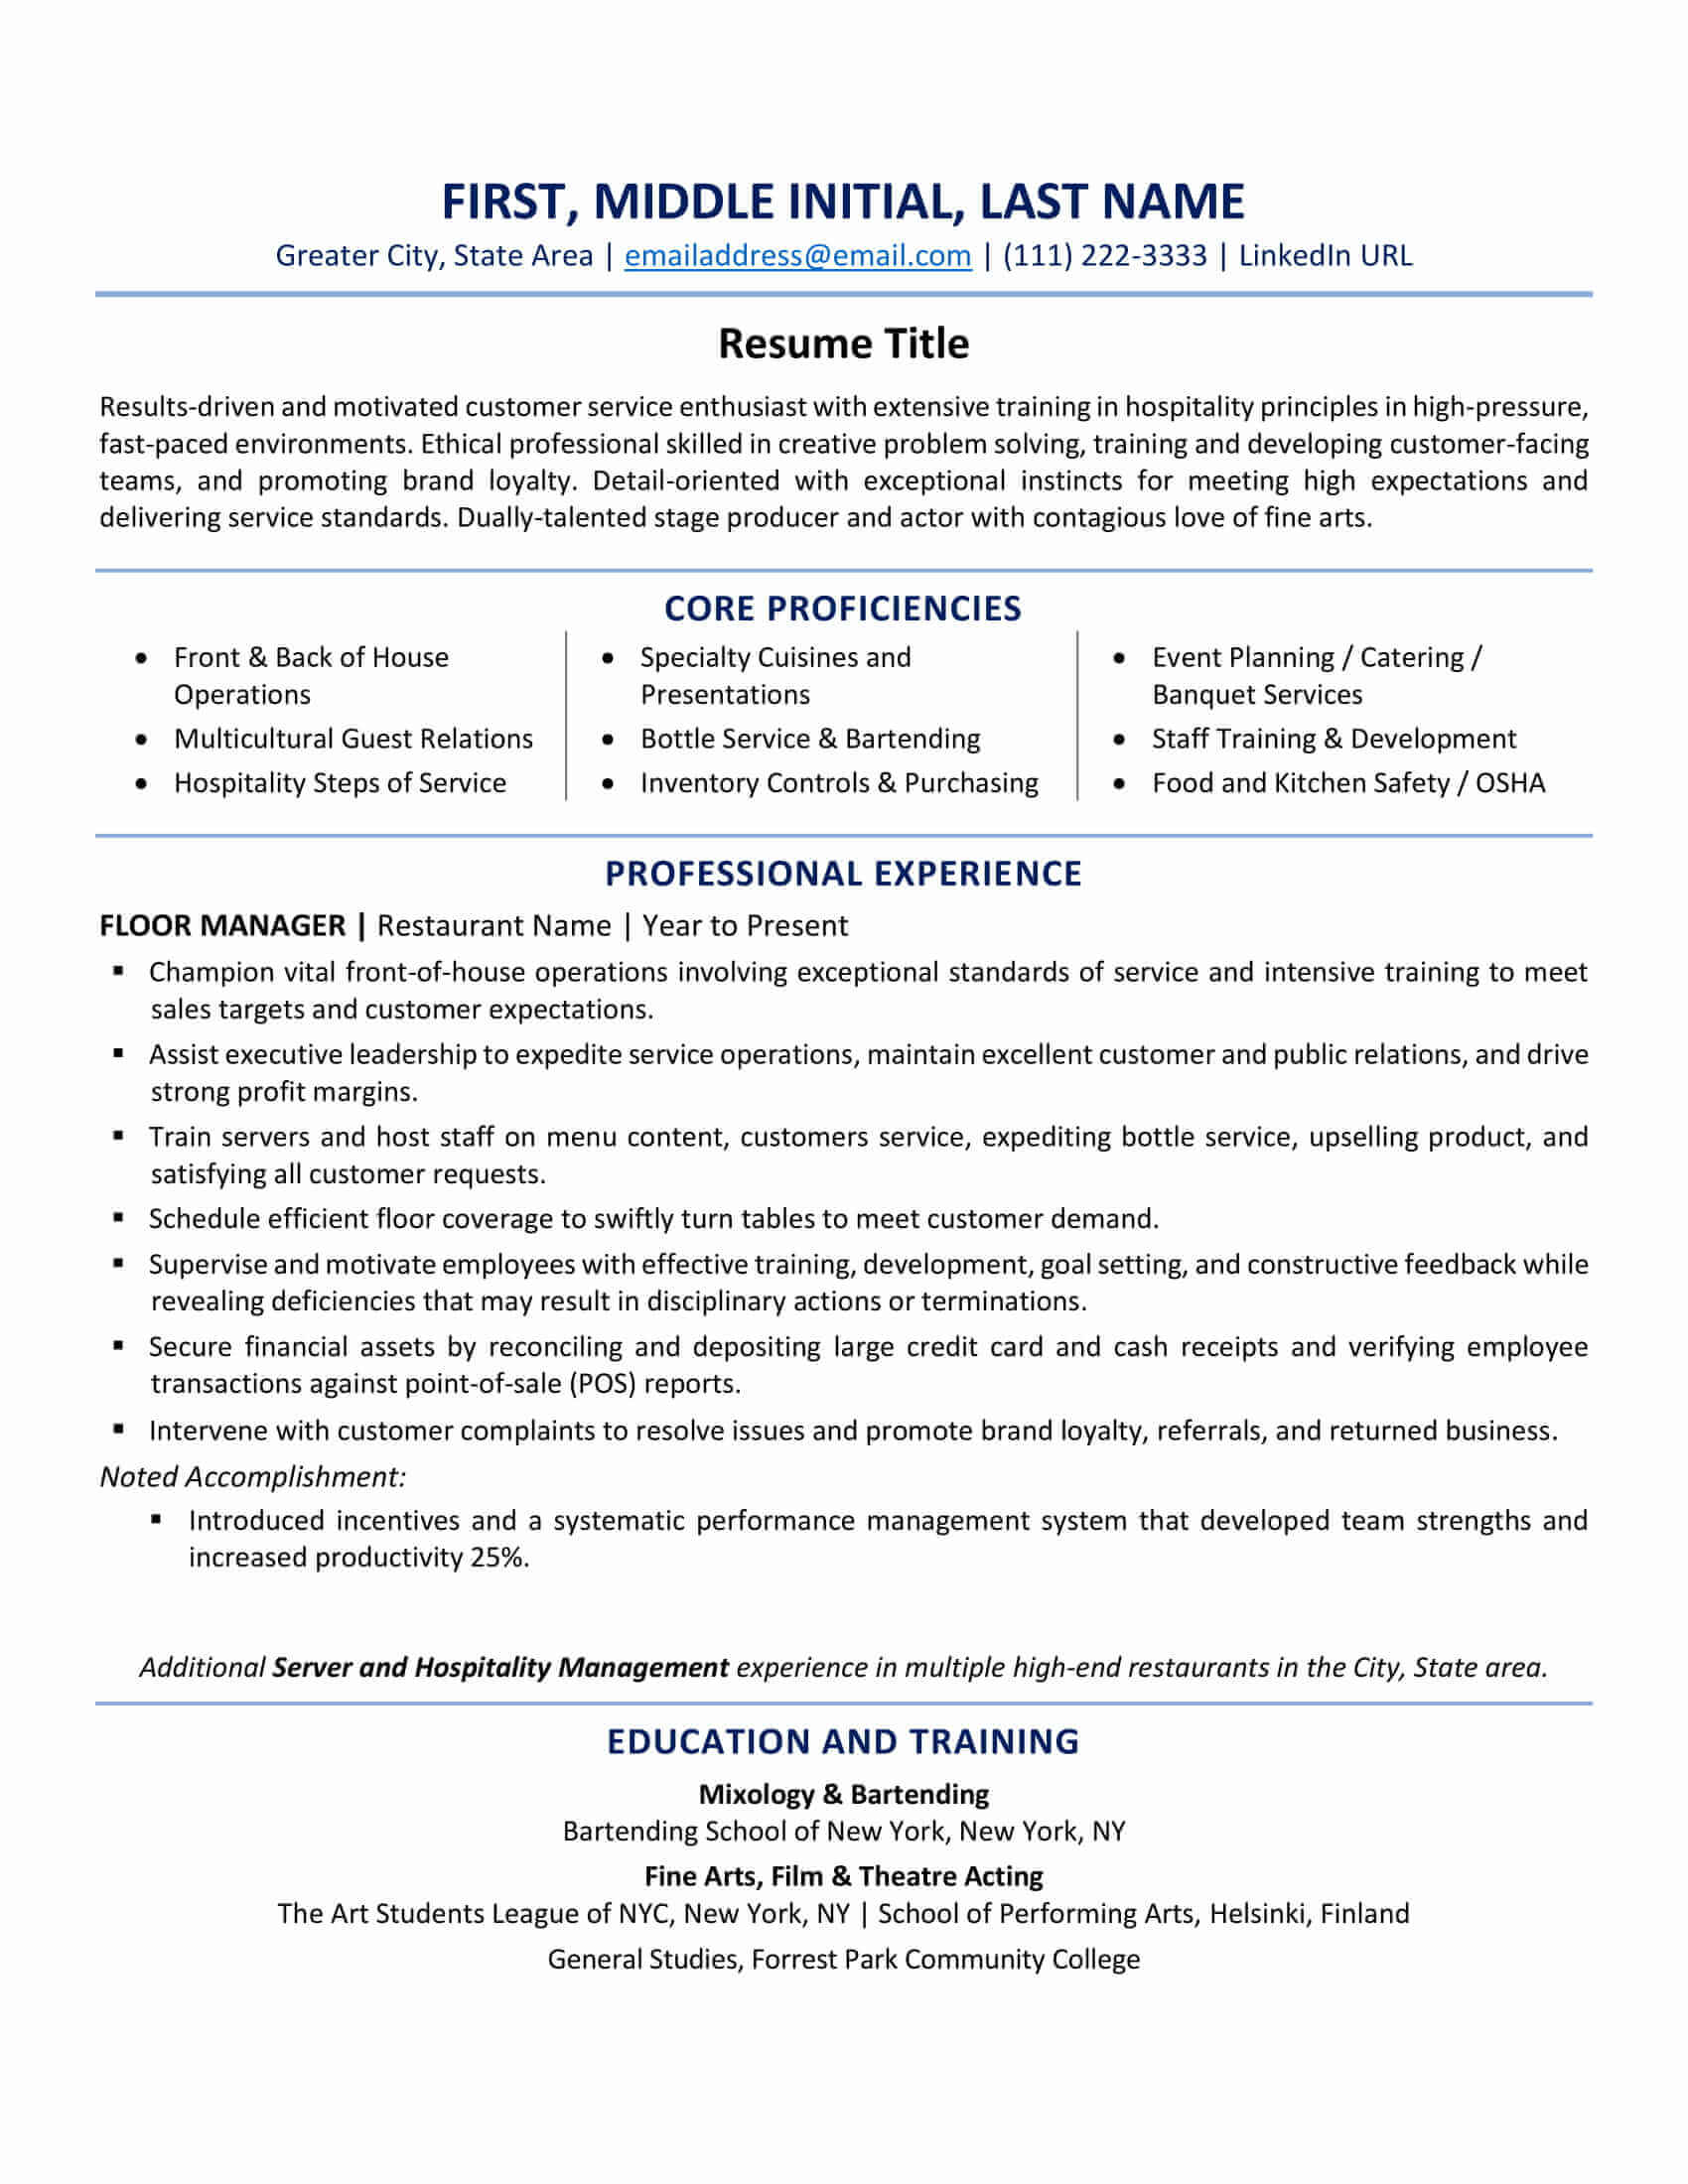 ats resume test free checker formatting examples templates friendly when moving to the us Resume Free Resume Templates Ats Friendly